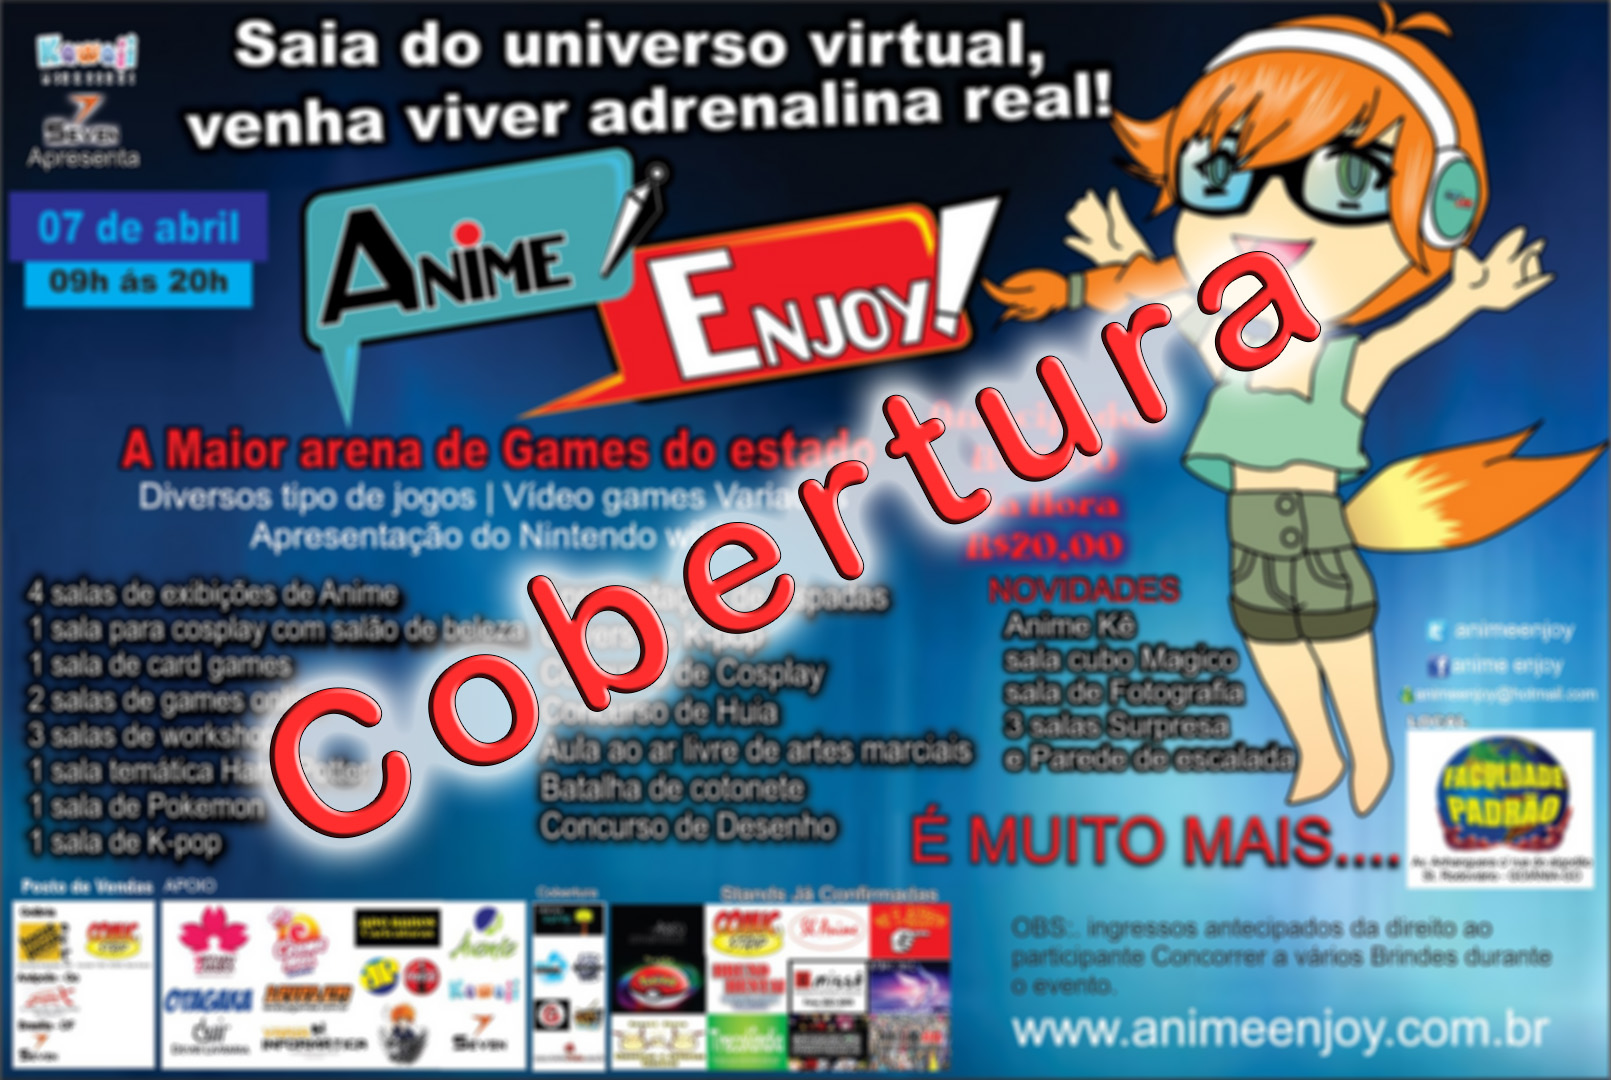 Anime Enjoy - Cobertura